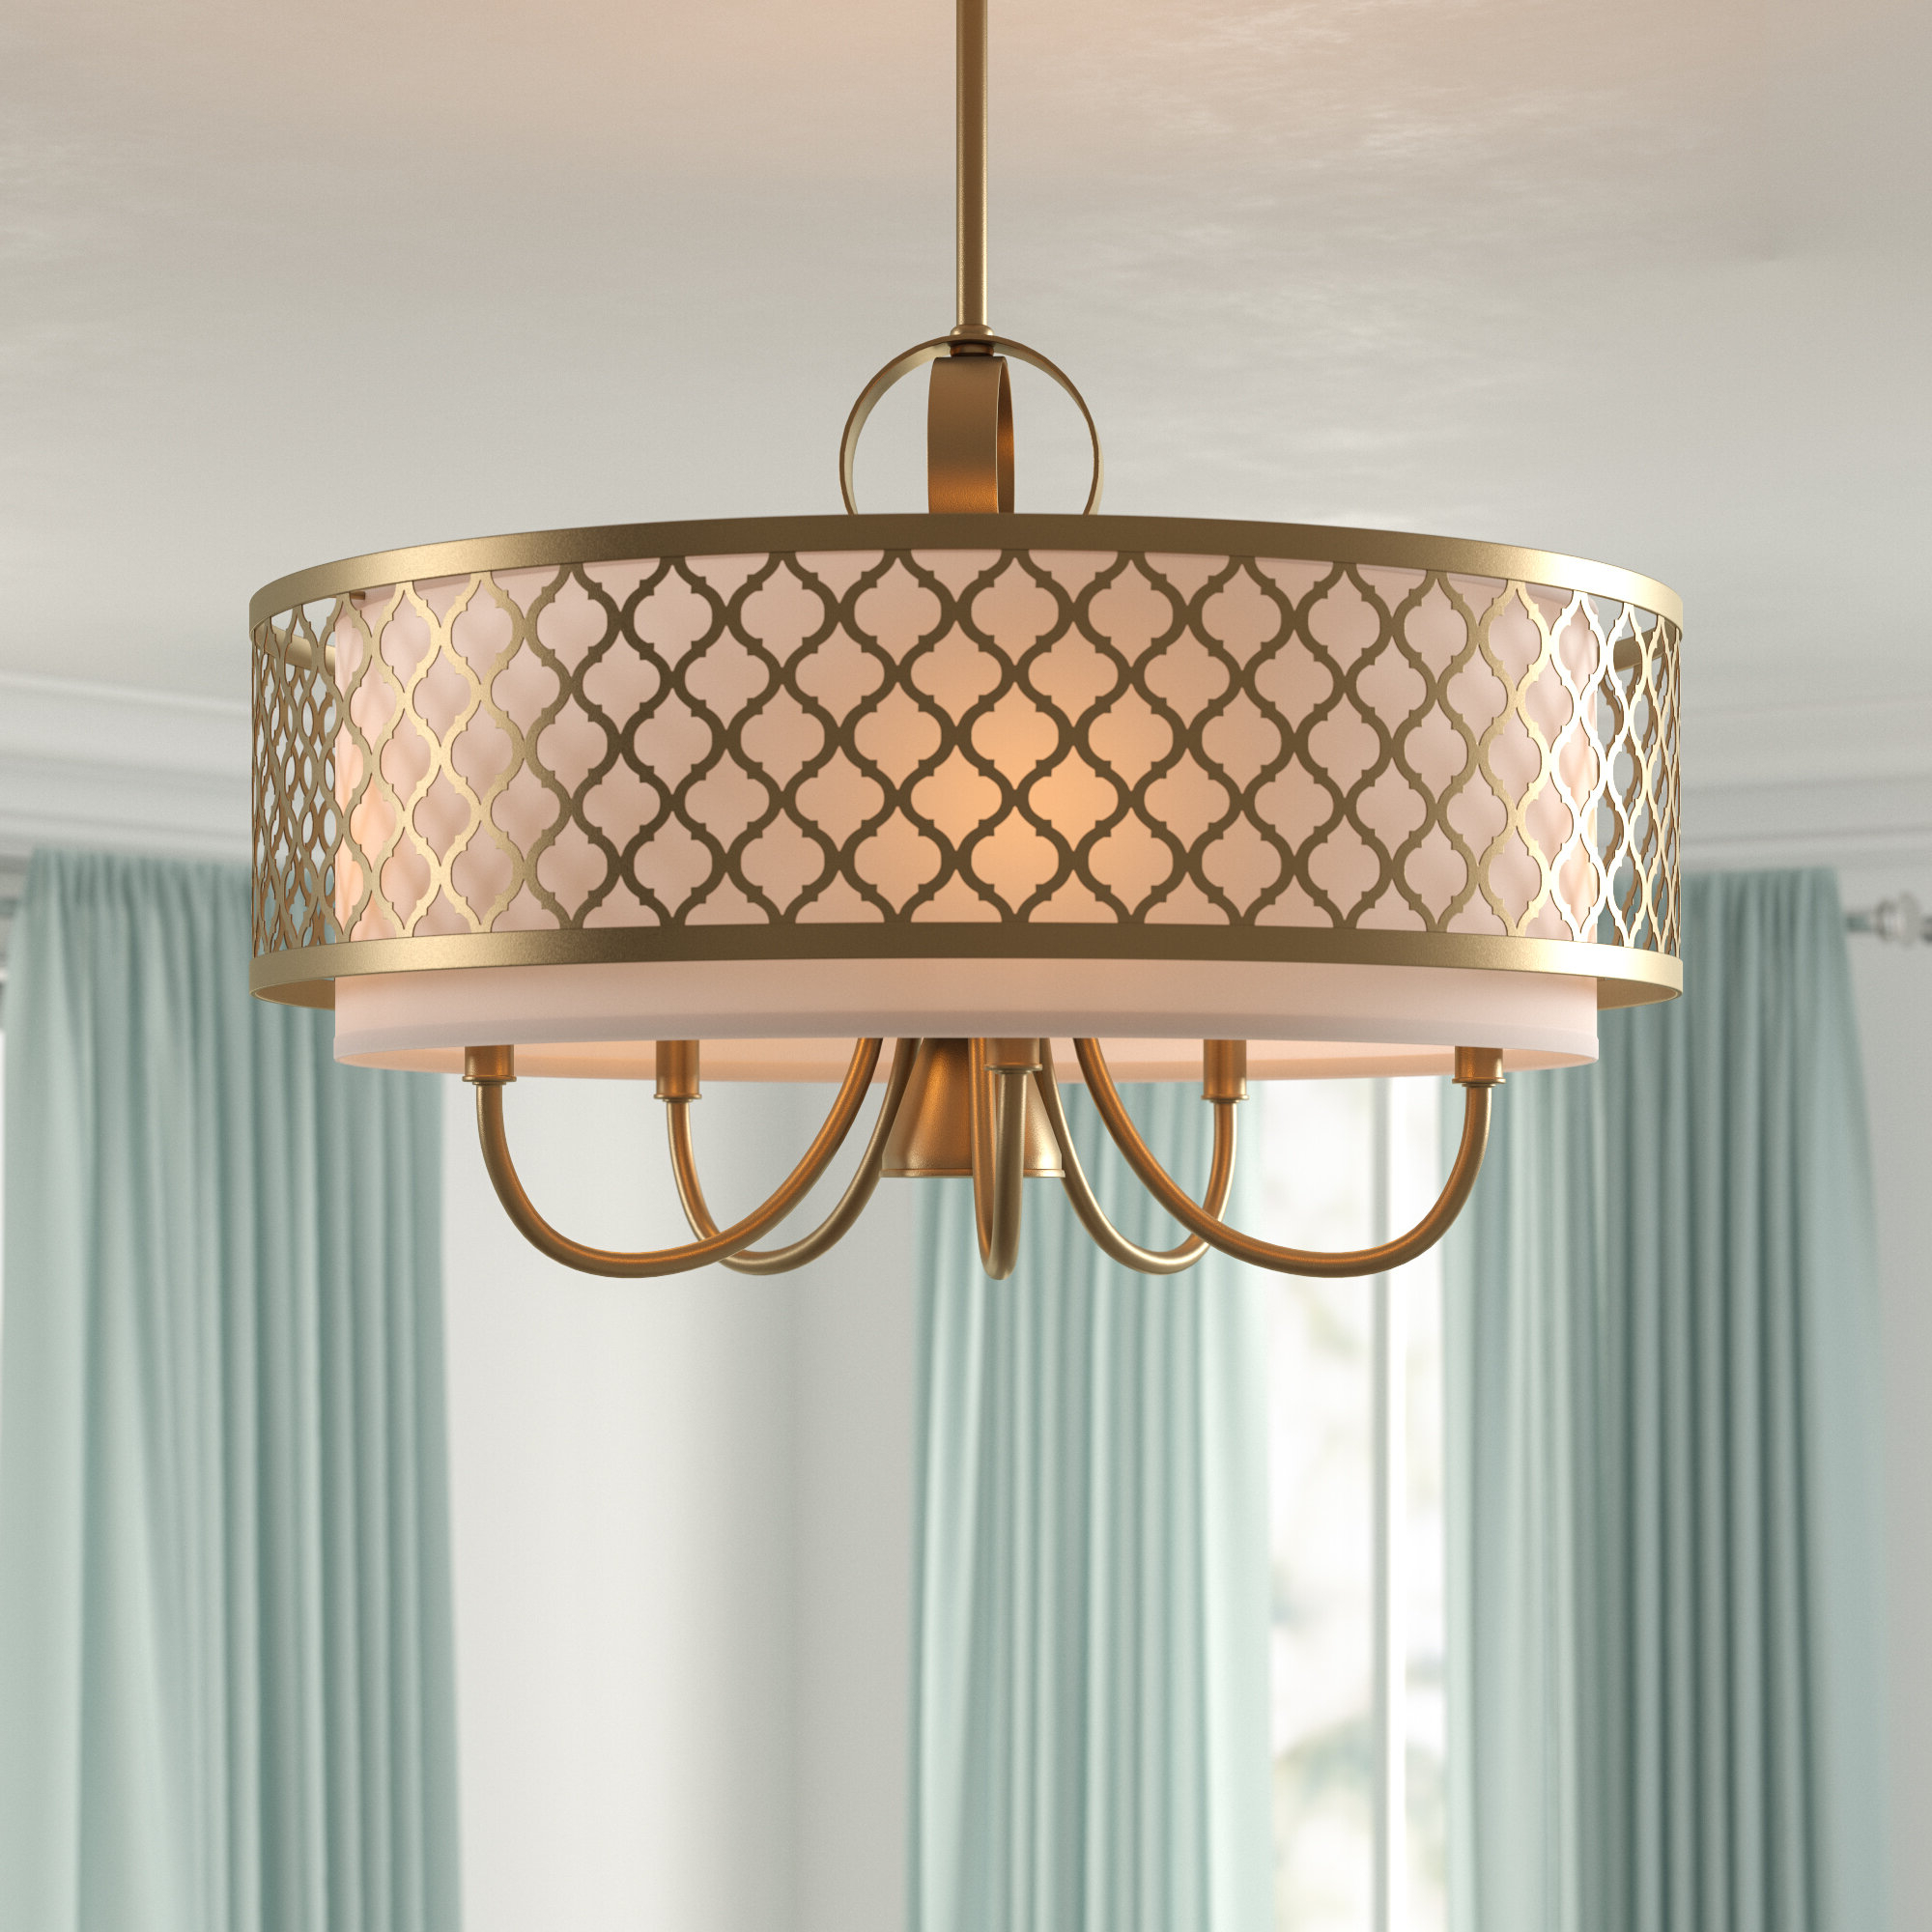 2020 Abel 5 Light Drum Chandeliers With Tymvou 6 Light Drum Chandelier (View 4 of 25)